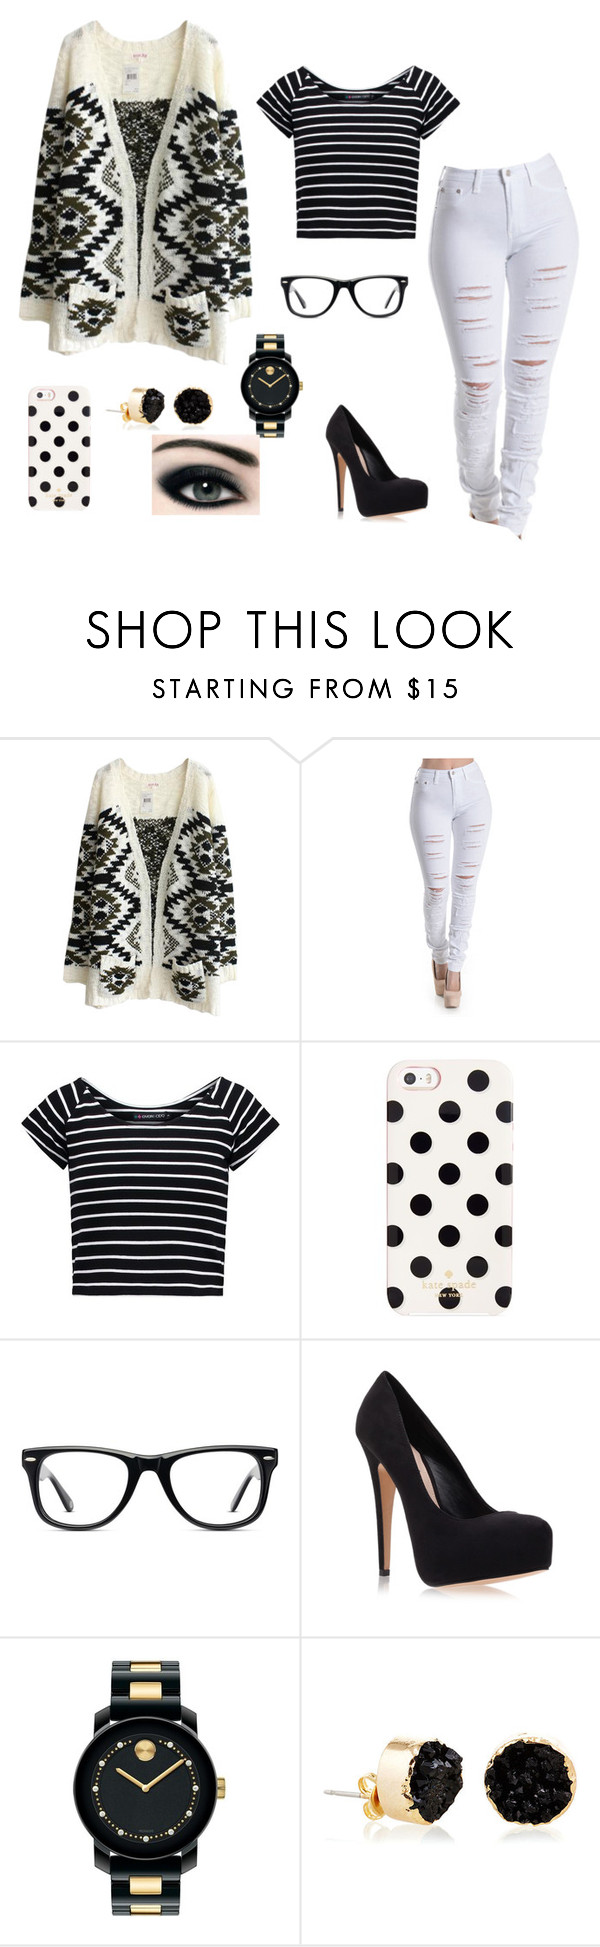 """""""black and white patterns"""" by pianims ❤ liked on Polyvore featuring even&odd, Kate Spade, Muse, Carvela Kurt Geiger, Movado and Janna Conner"""